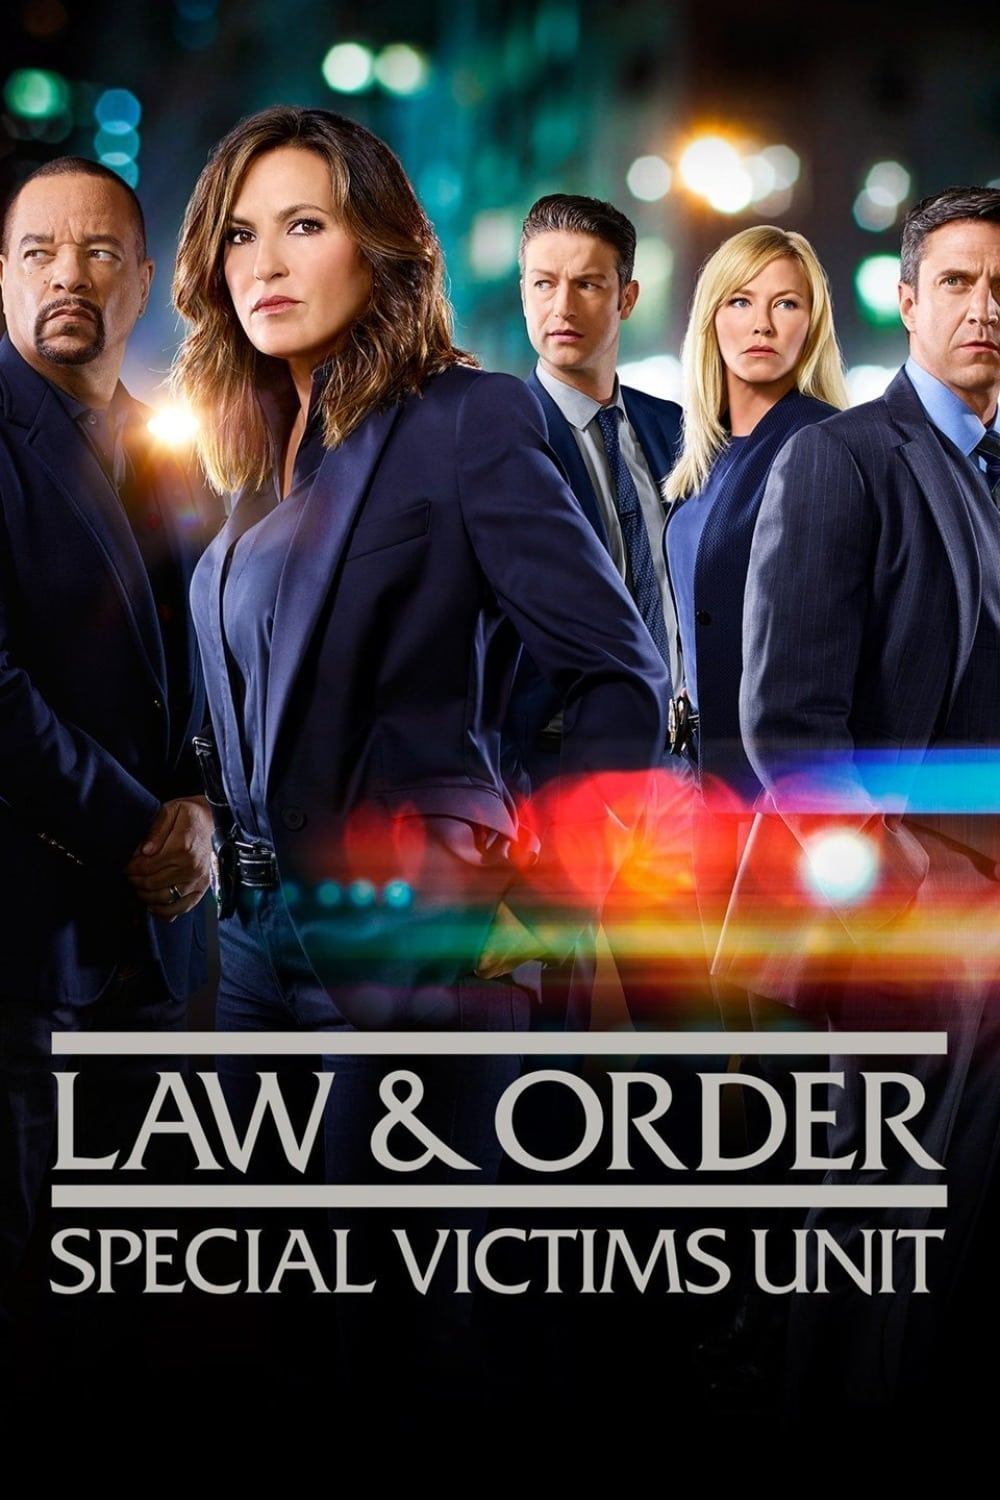 image for Law & Order: Special Victims Unit